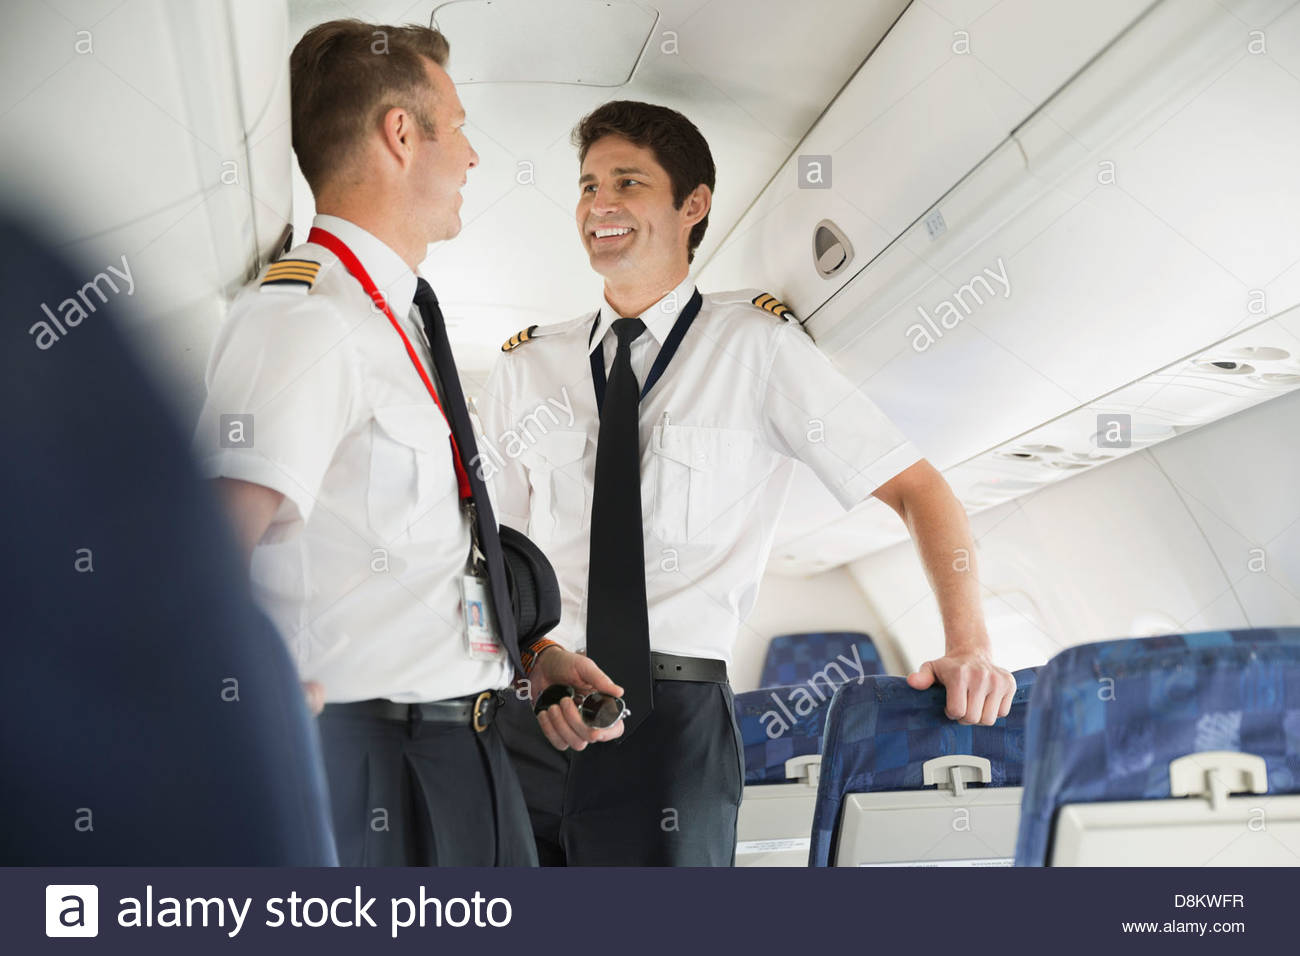 Male pilot and co-pilot talking in airplane cabin - Stock Image